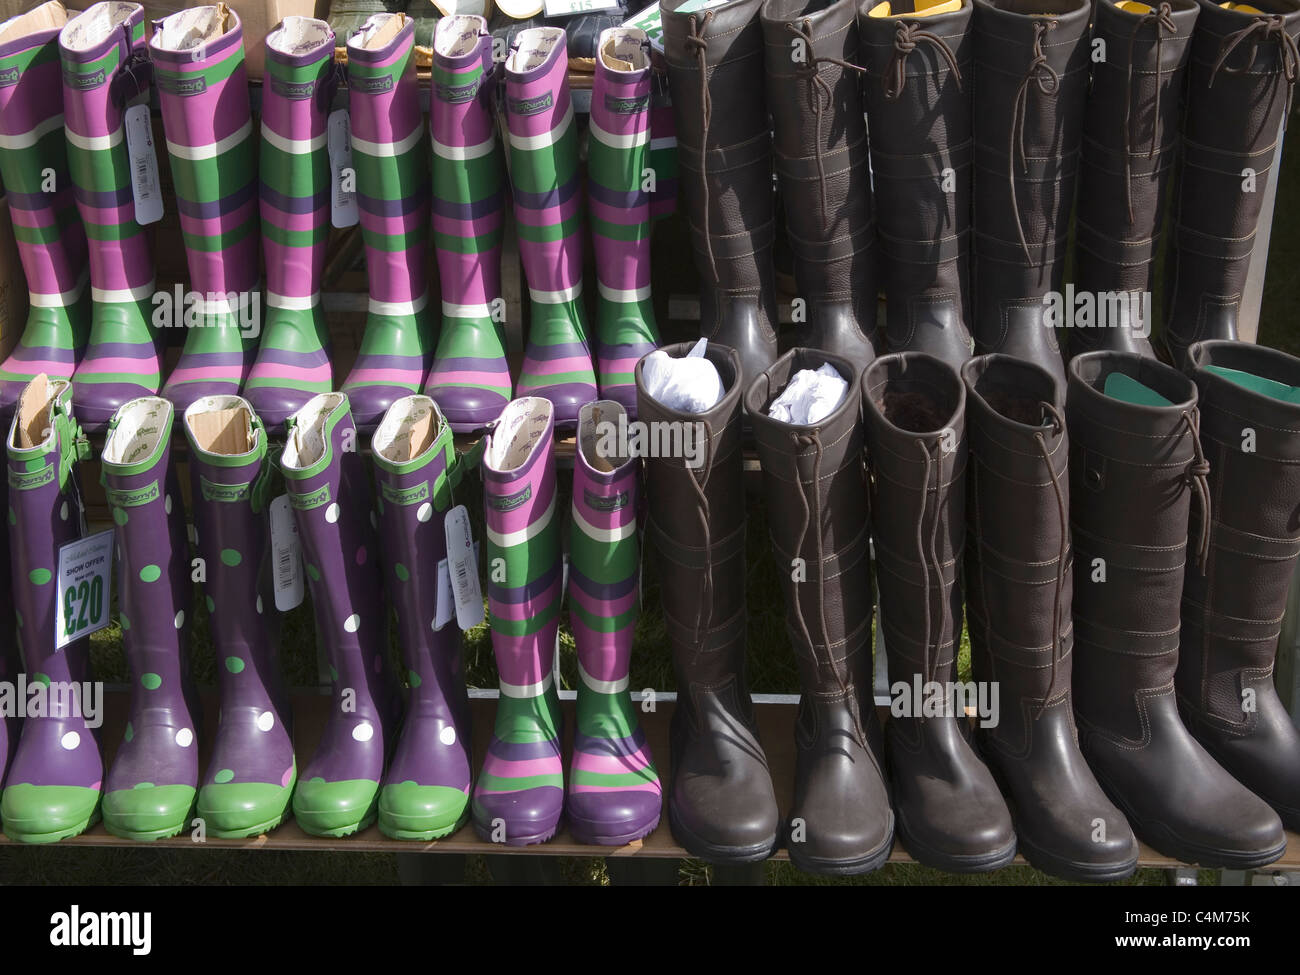 wellington boots for sale at the south of england show 2011 - Stock Image